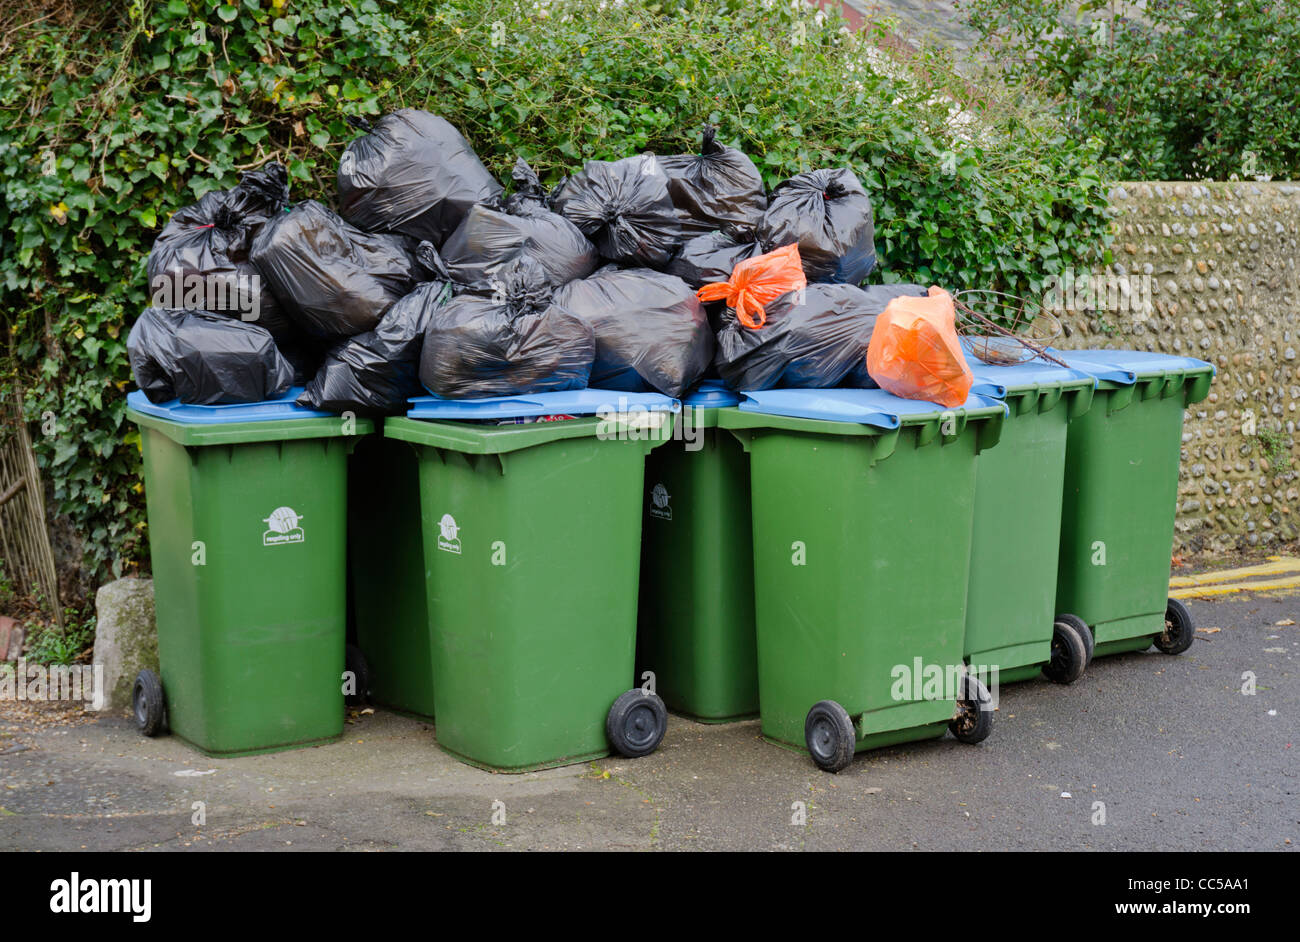 rubbish-bags-and-recycling-wheelie-bins-